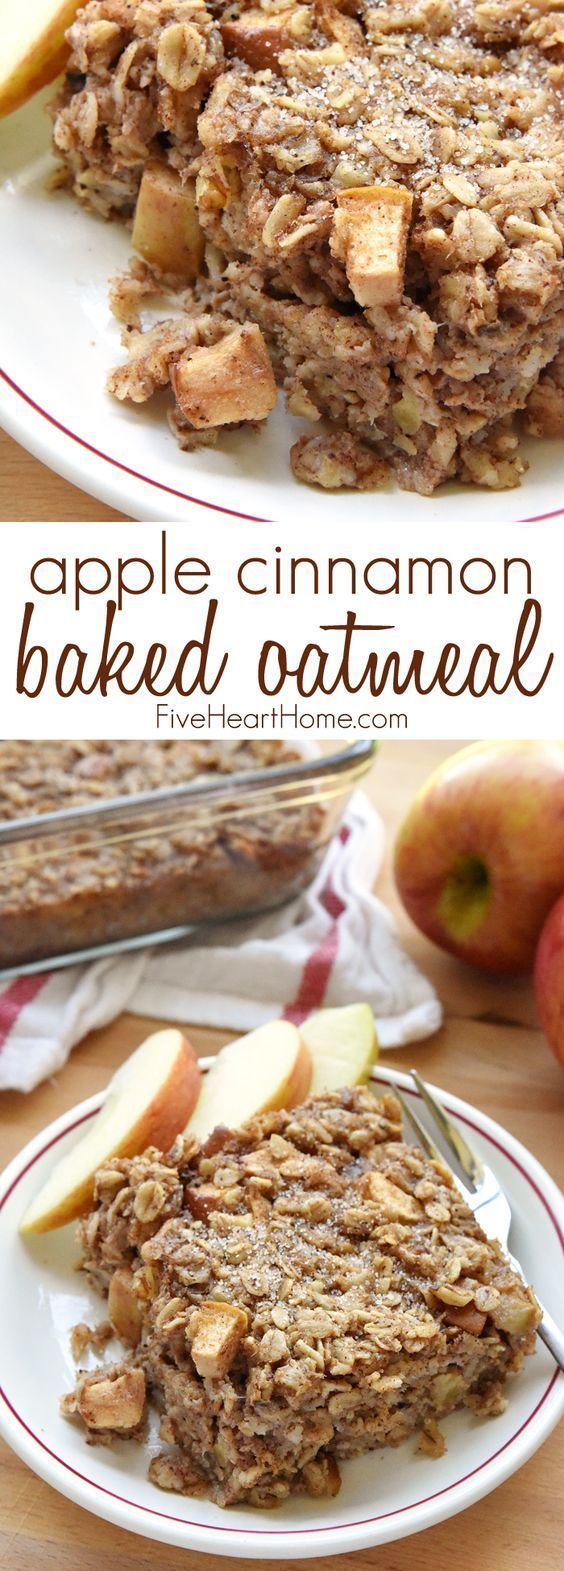 Apple Cinnamon Baked Oatmeal loaded with tender apples